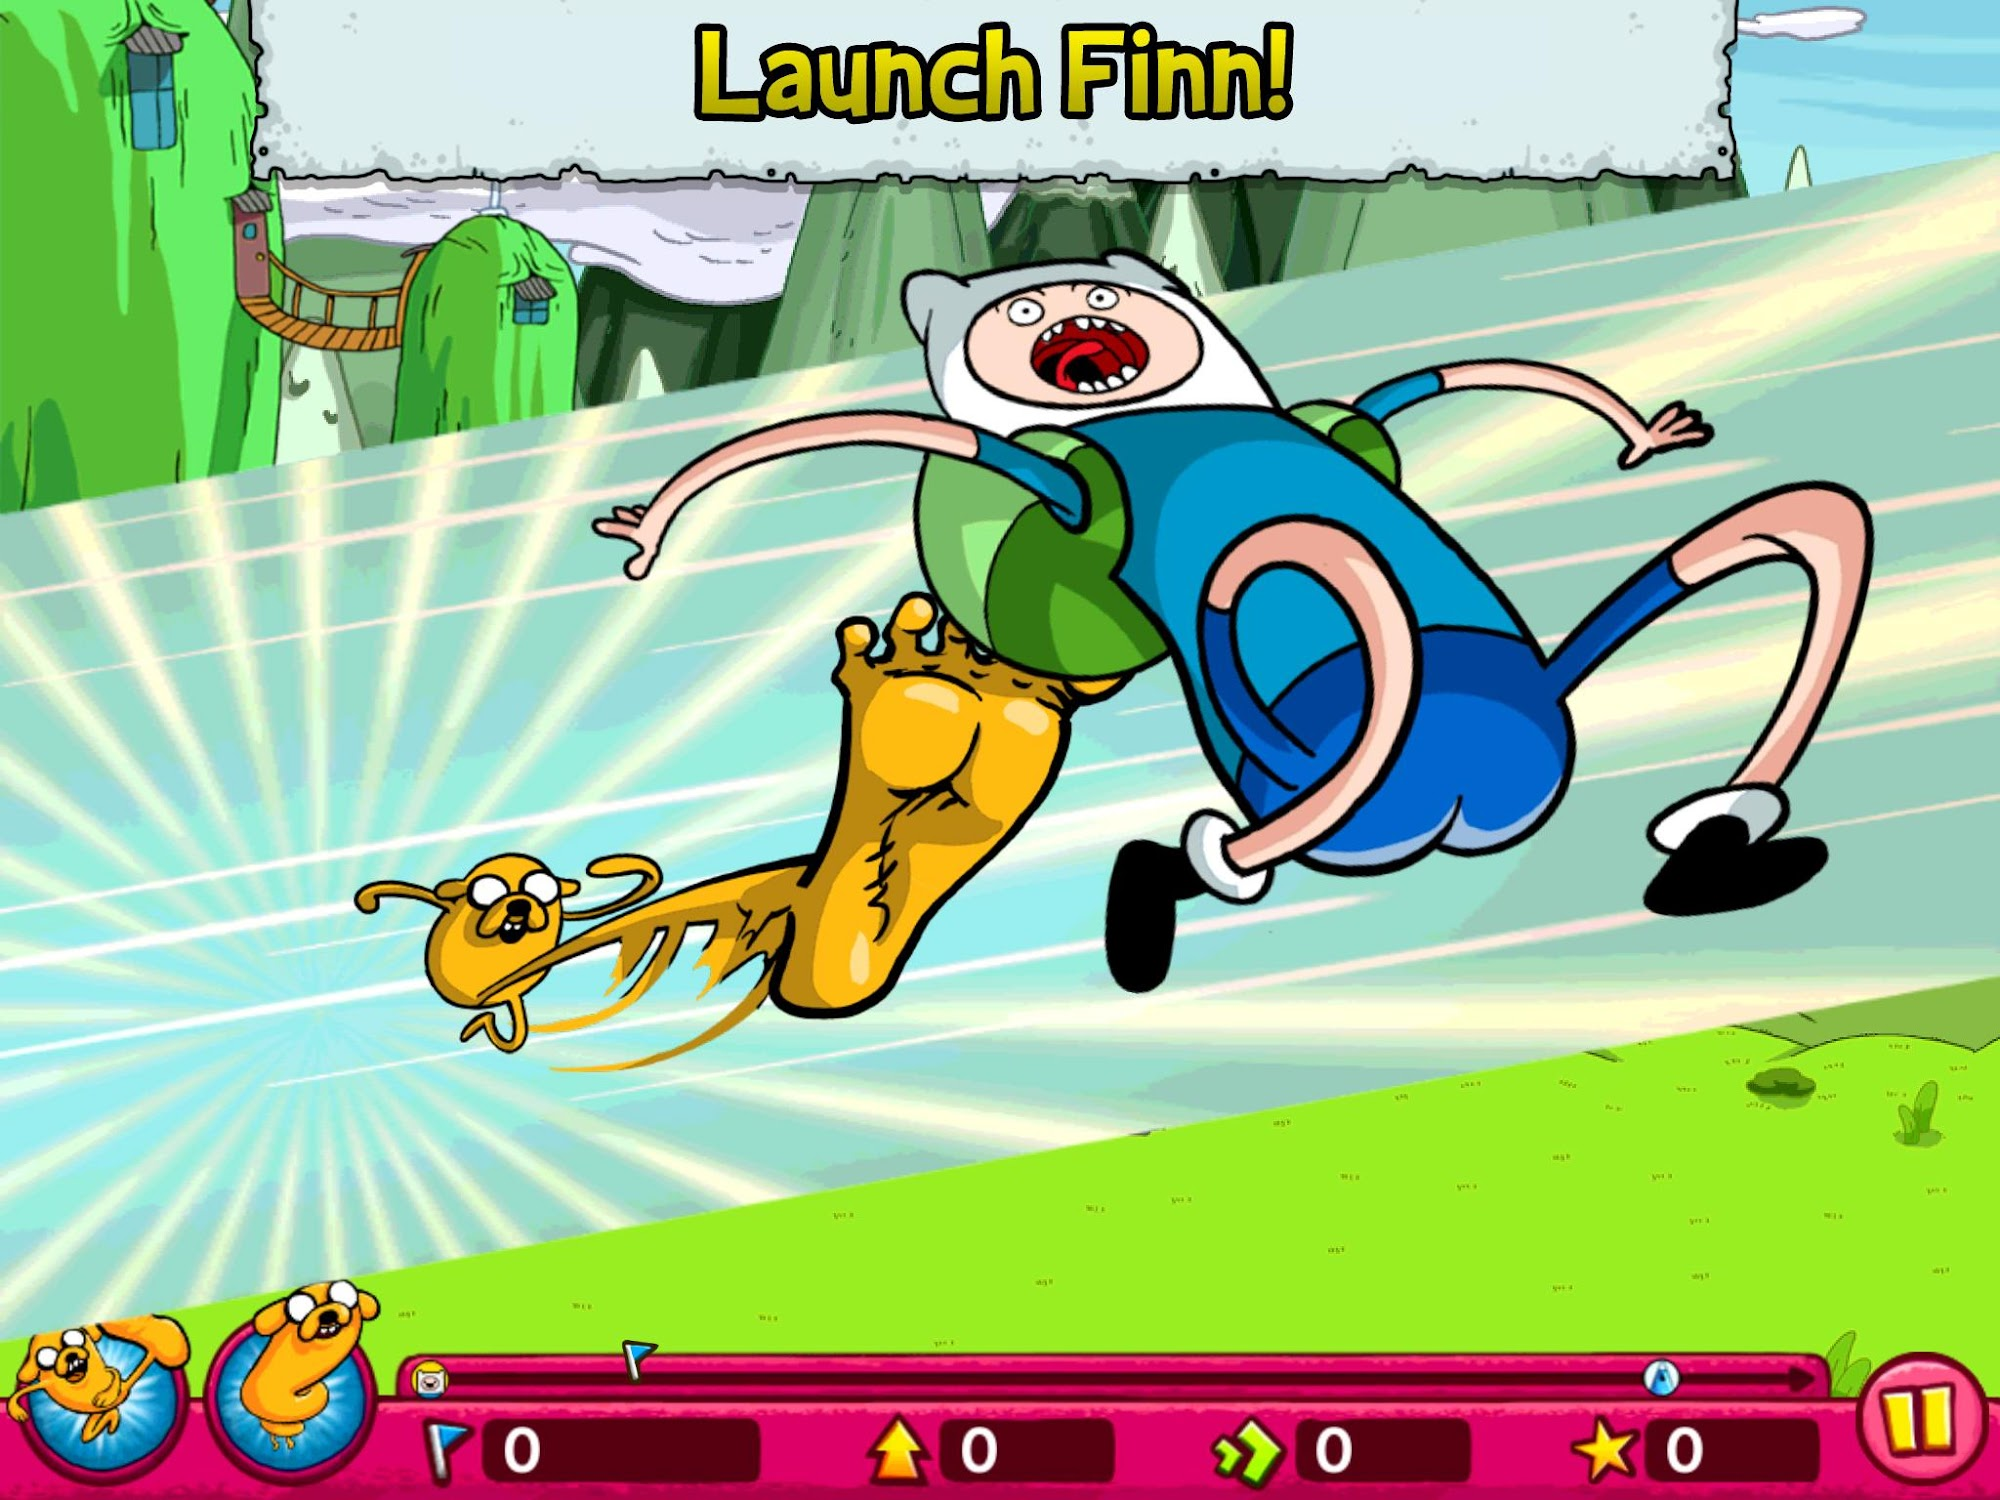 Jumping Finn Turbo screenshot #11